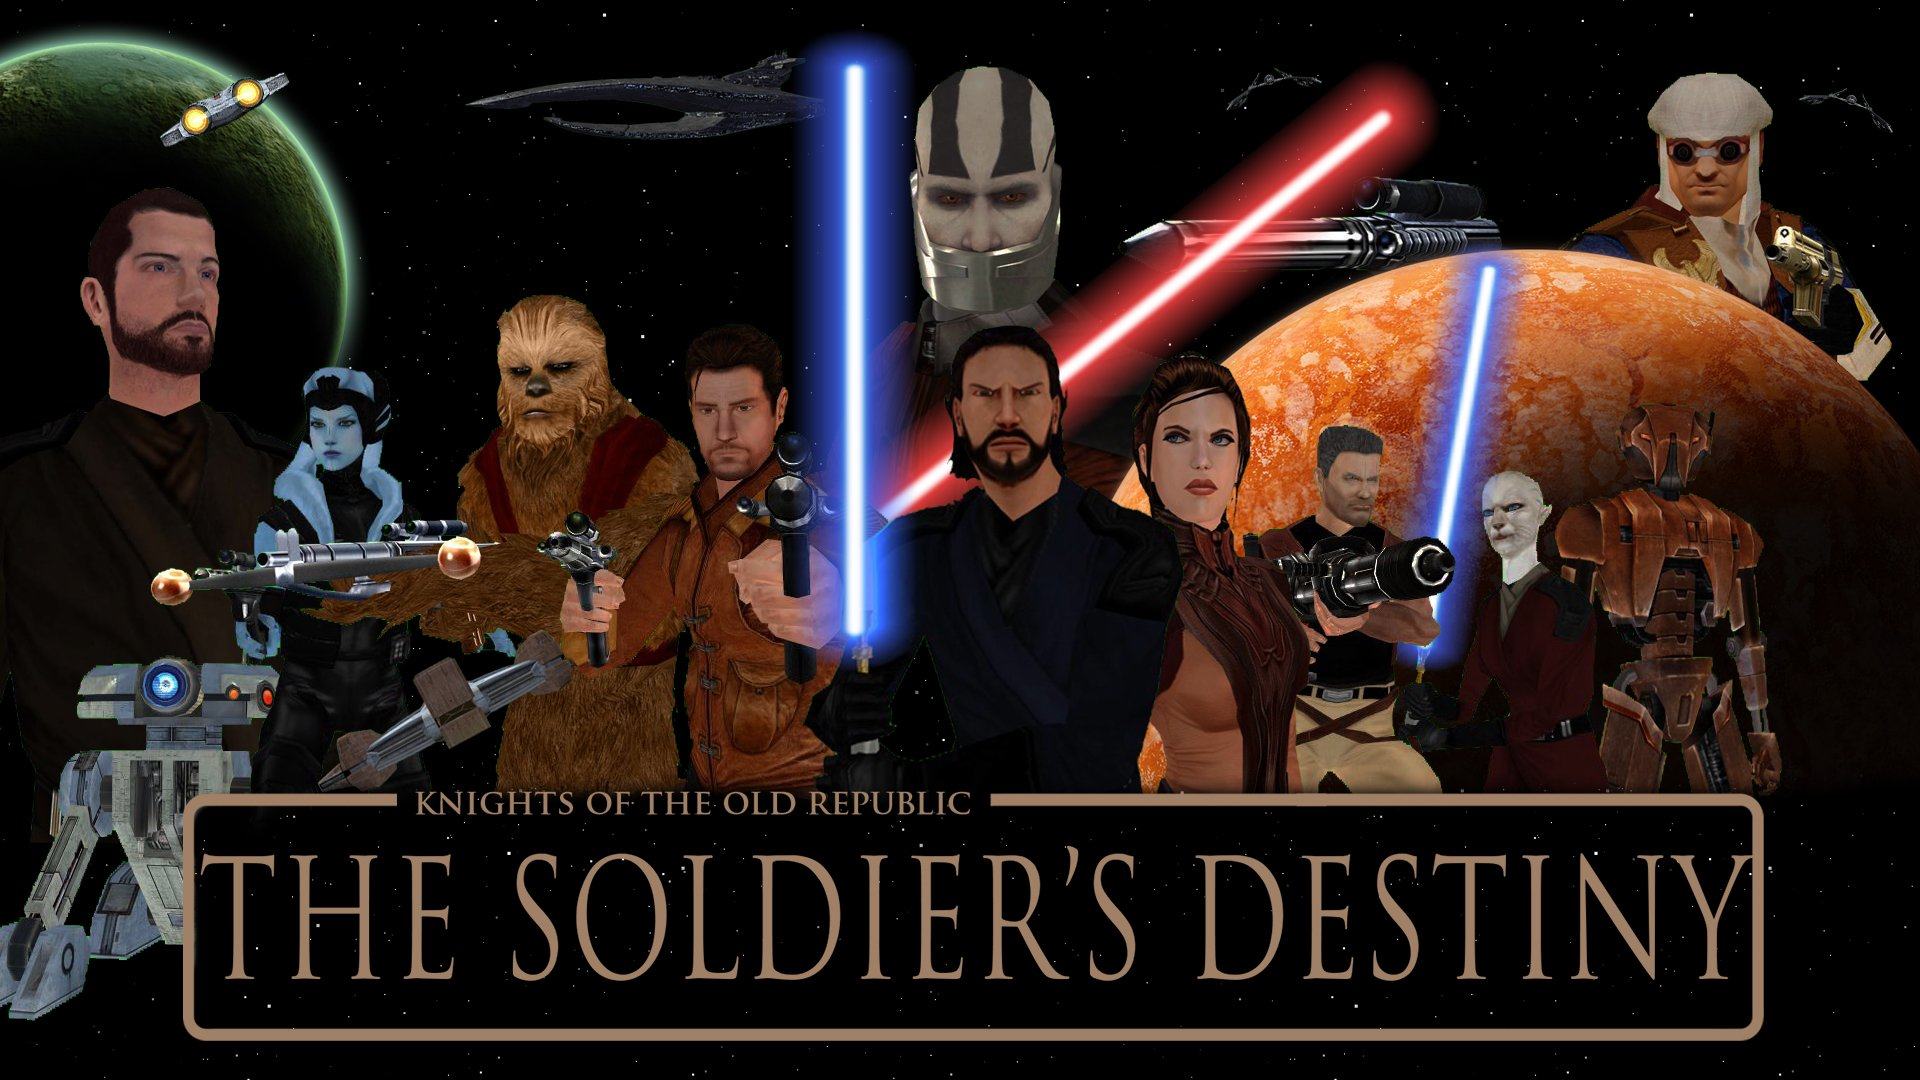 Entry #14 - The Soldier's Destiny: Now Available